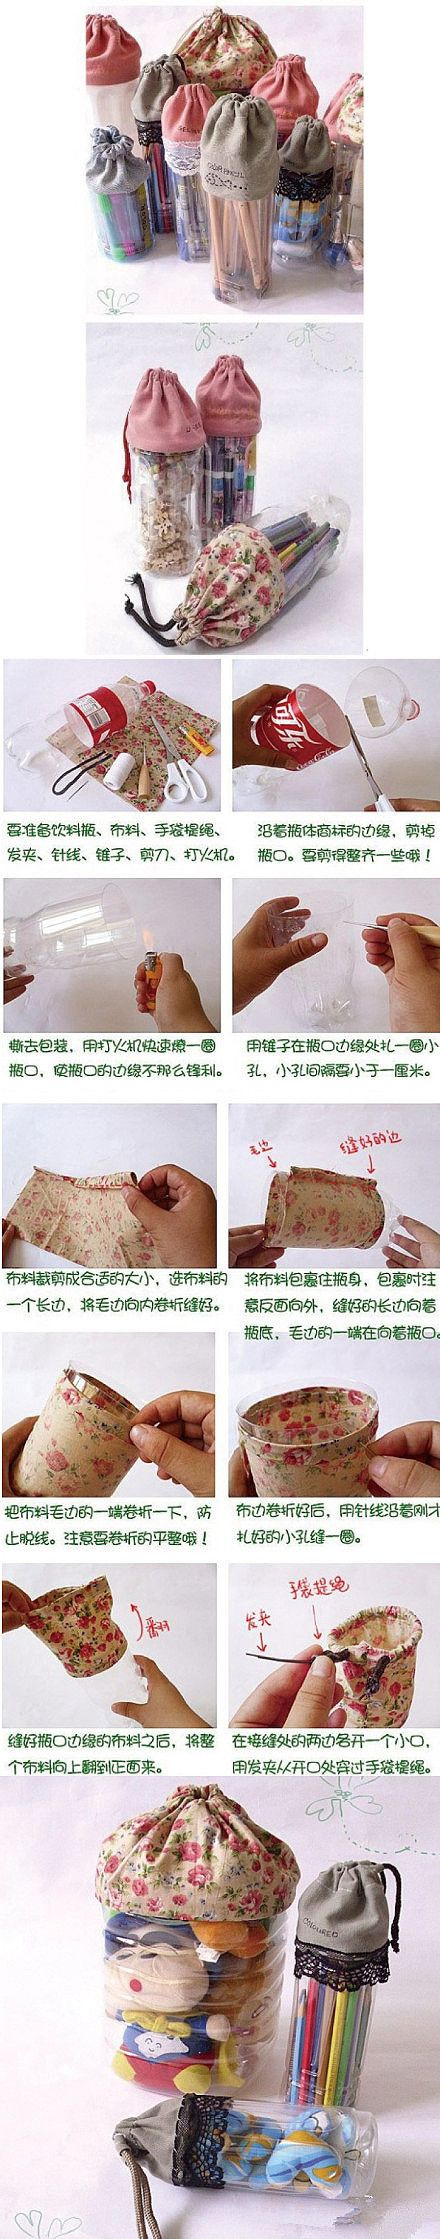 Tutorial DIY DIY handmade bottle pouch, have to admire the creativity pouch ...